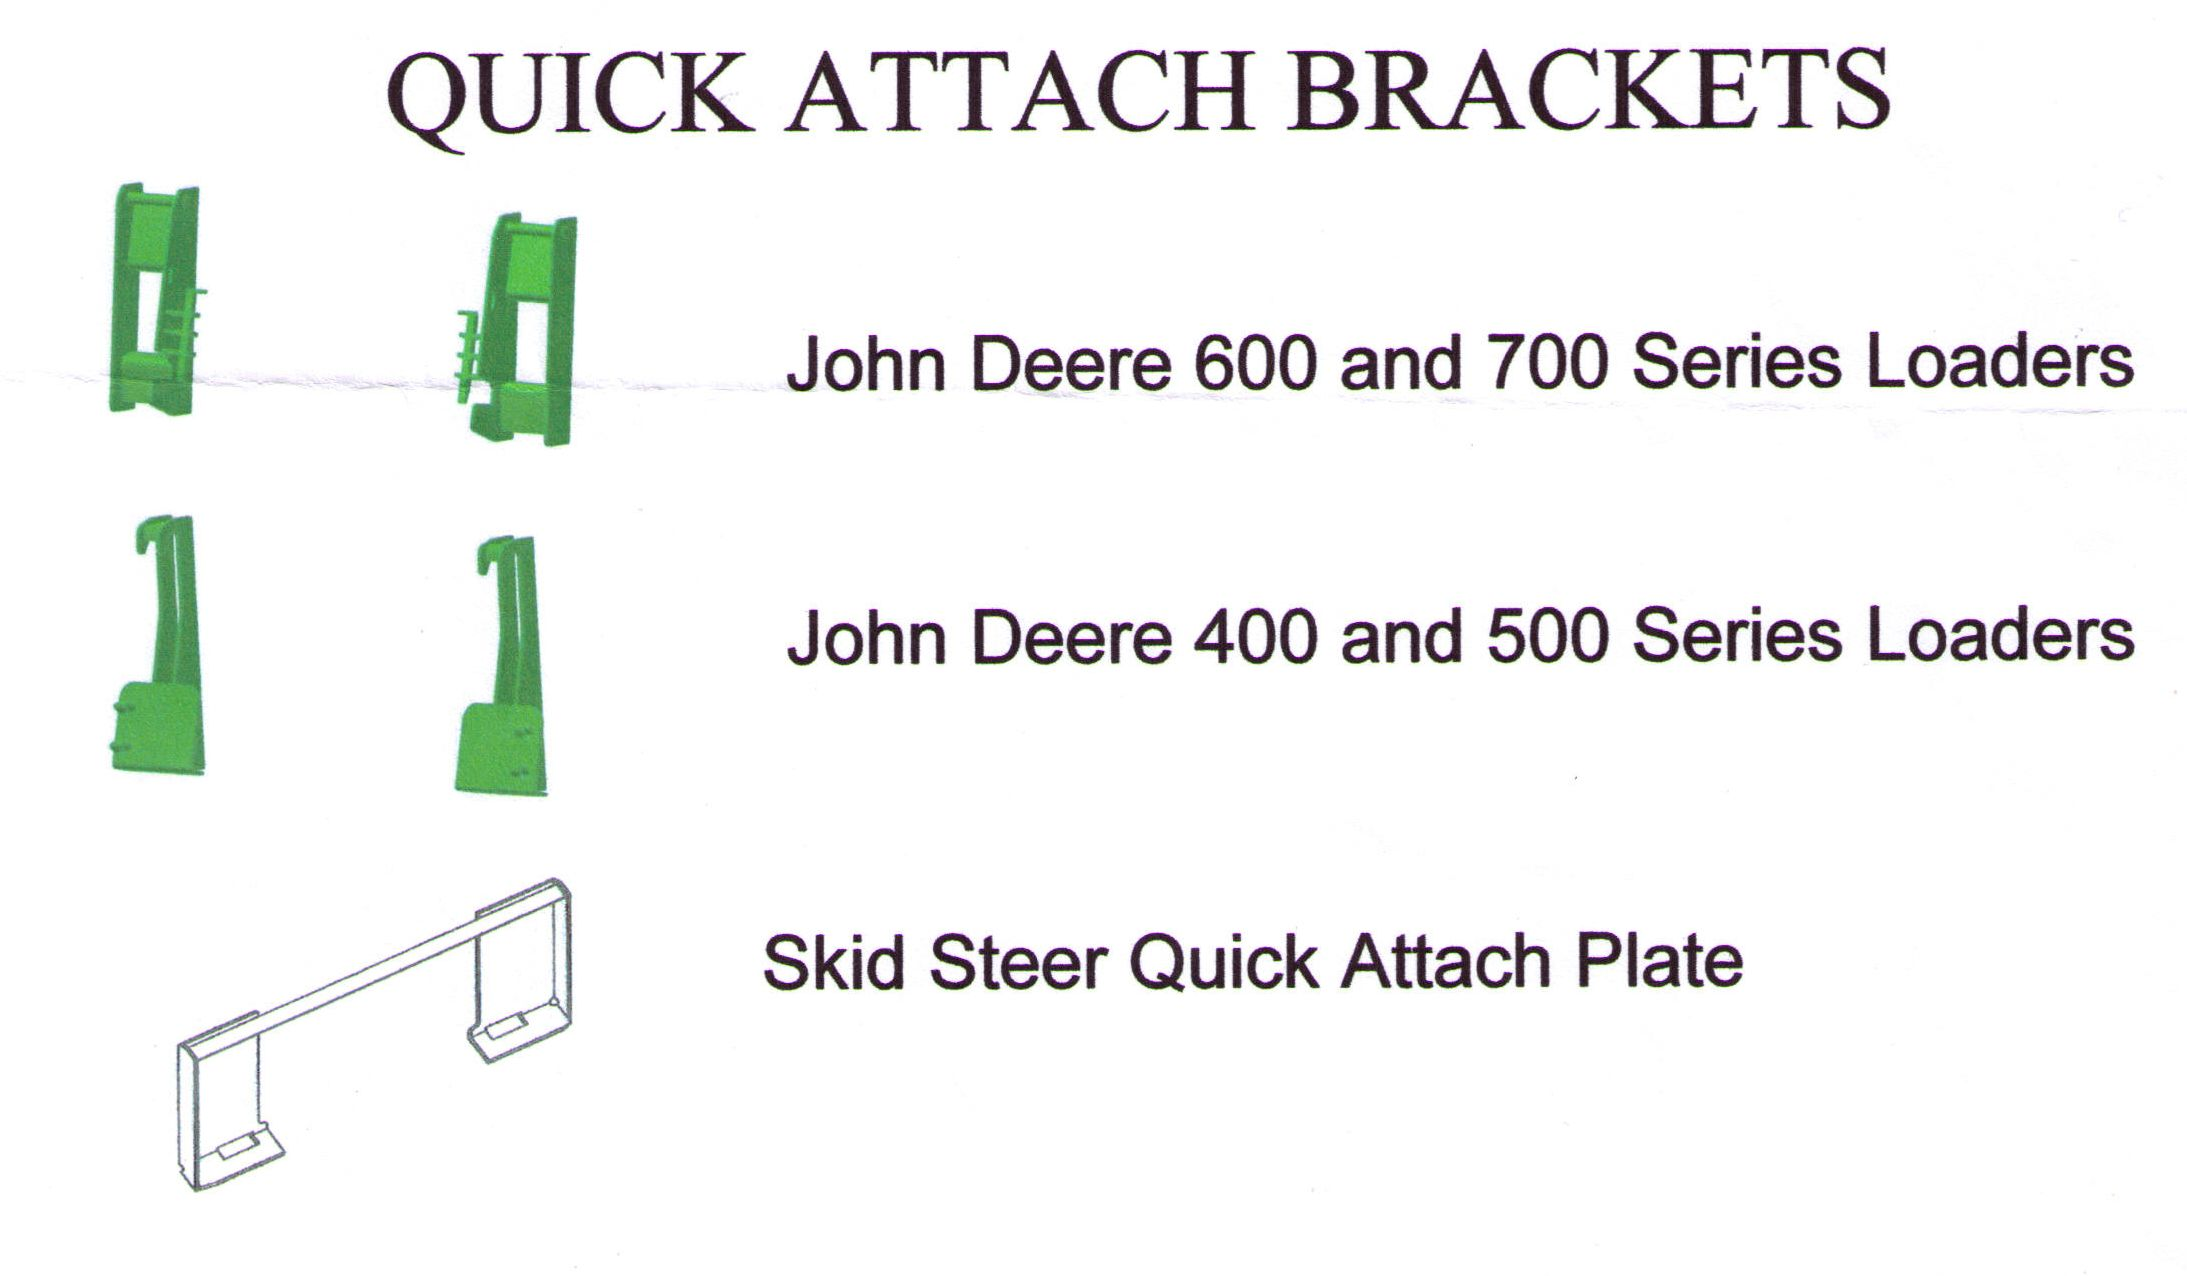 Weld On Quick Attach Brackets For John Deere And Weld On Skid Steer Plate For Skid Loaders That Are Quick Attach